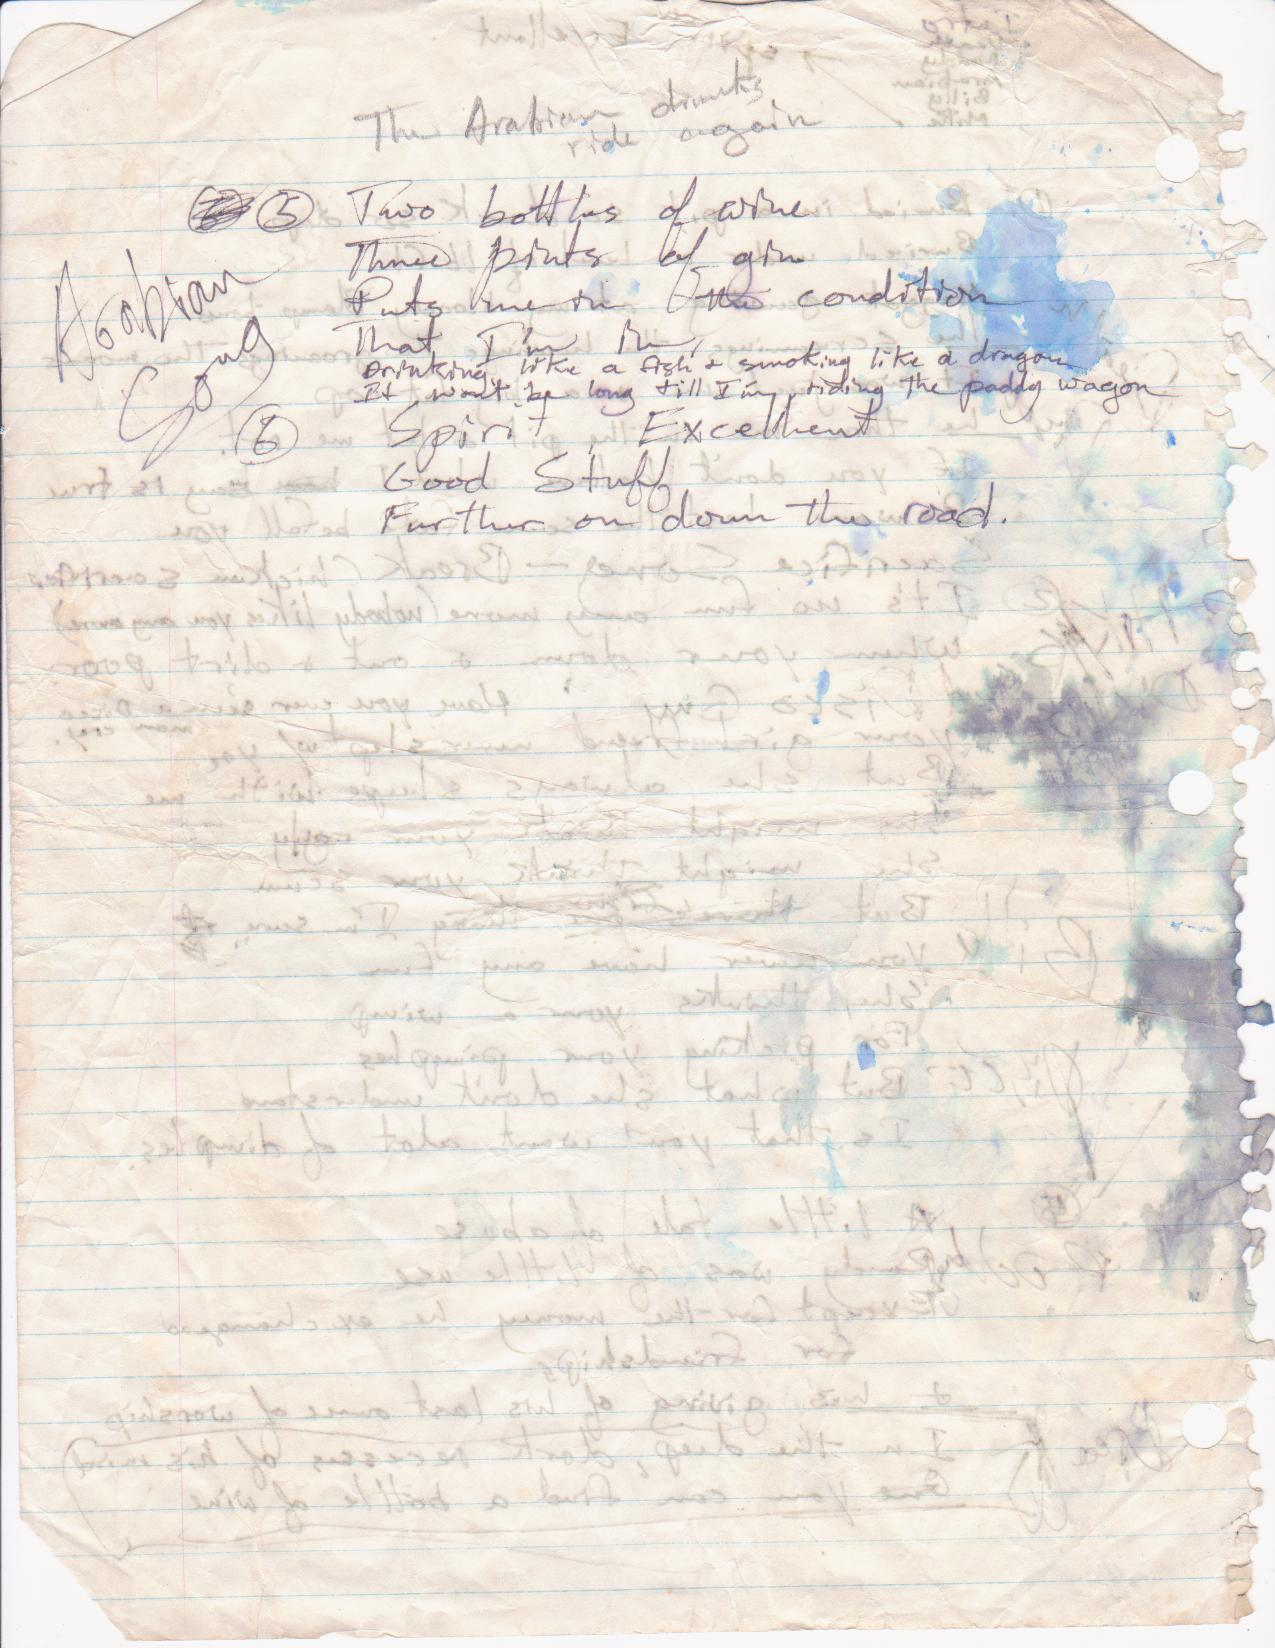 Walter's handwritten lyrics